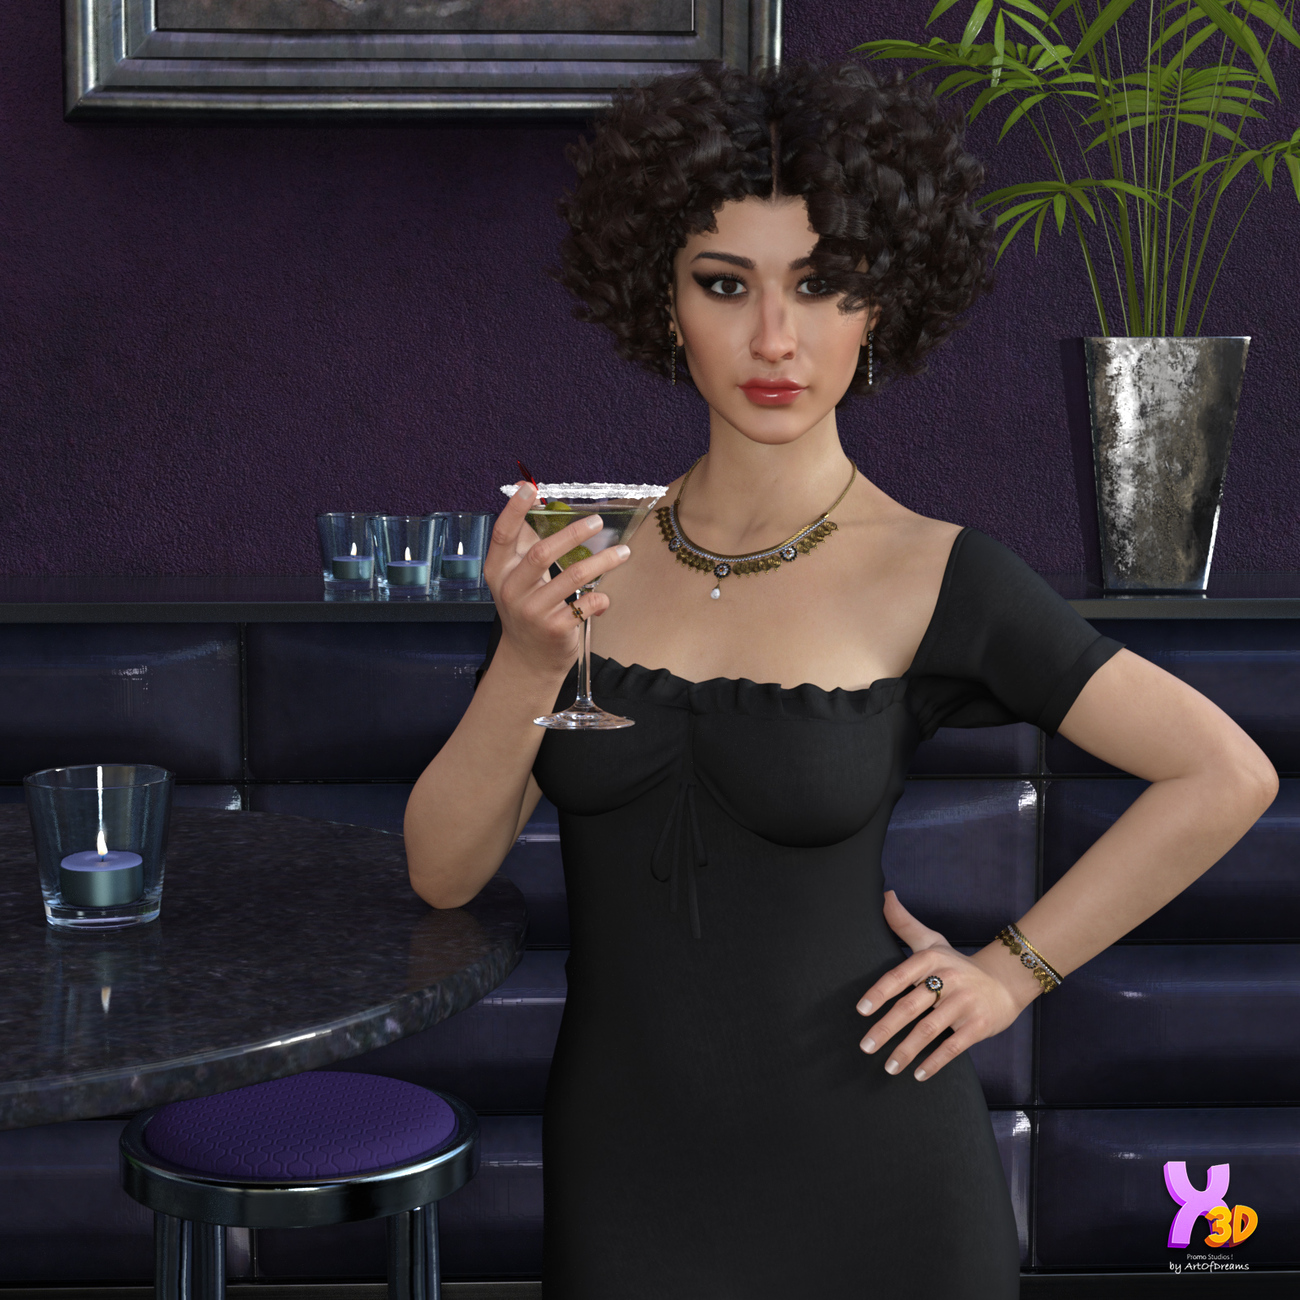 V3D Rayana - G8F by Vicey3D